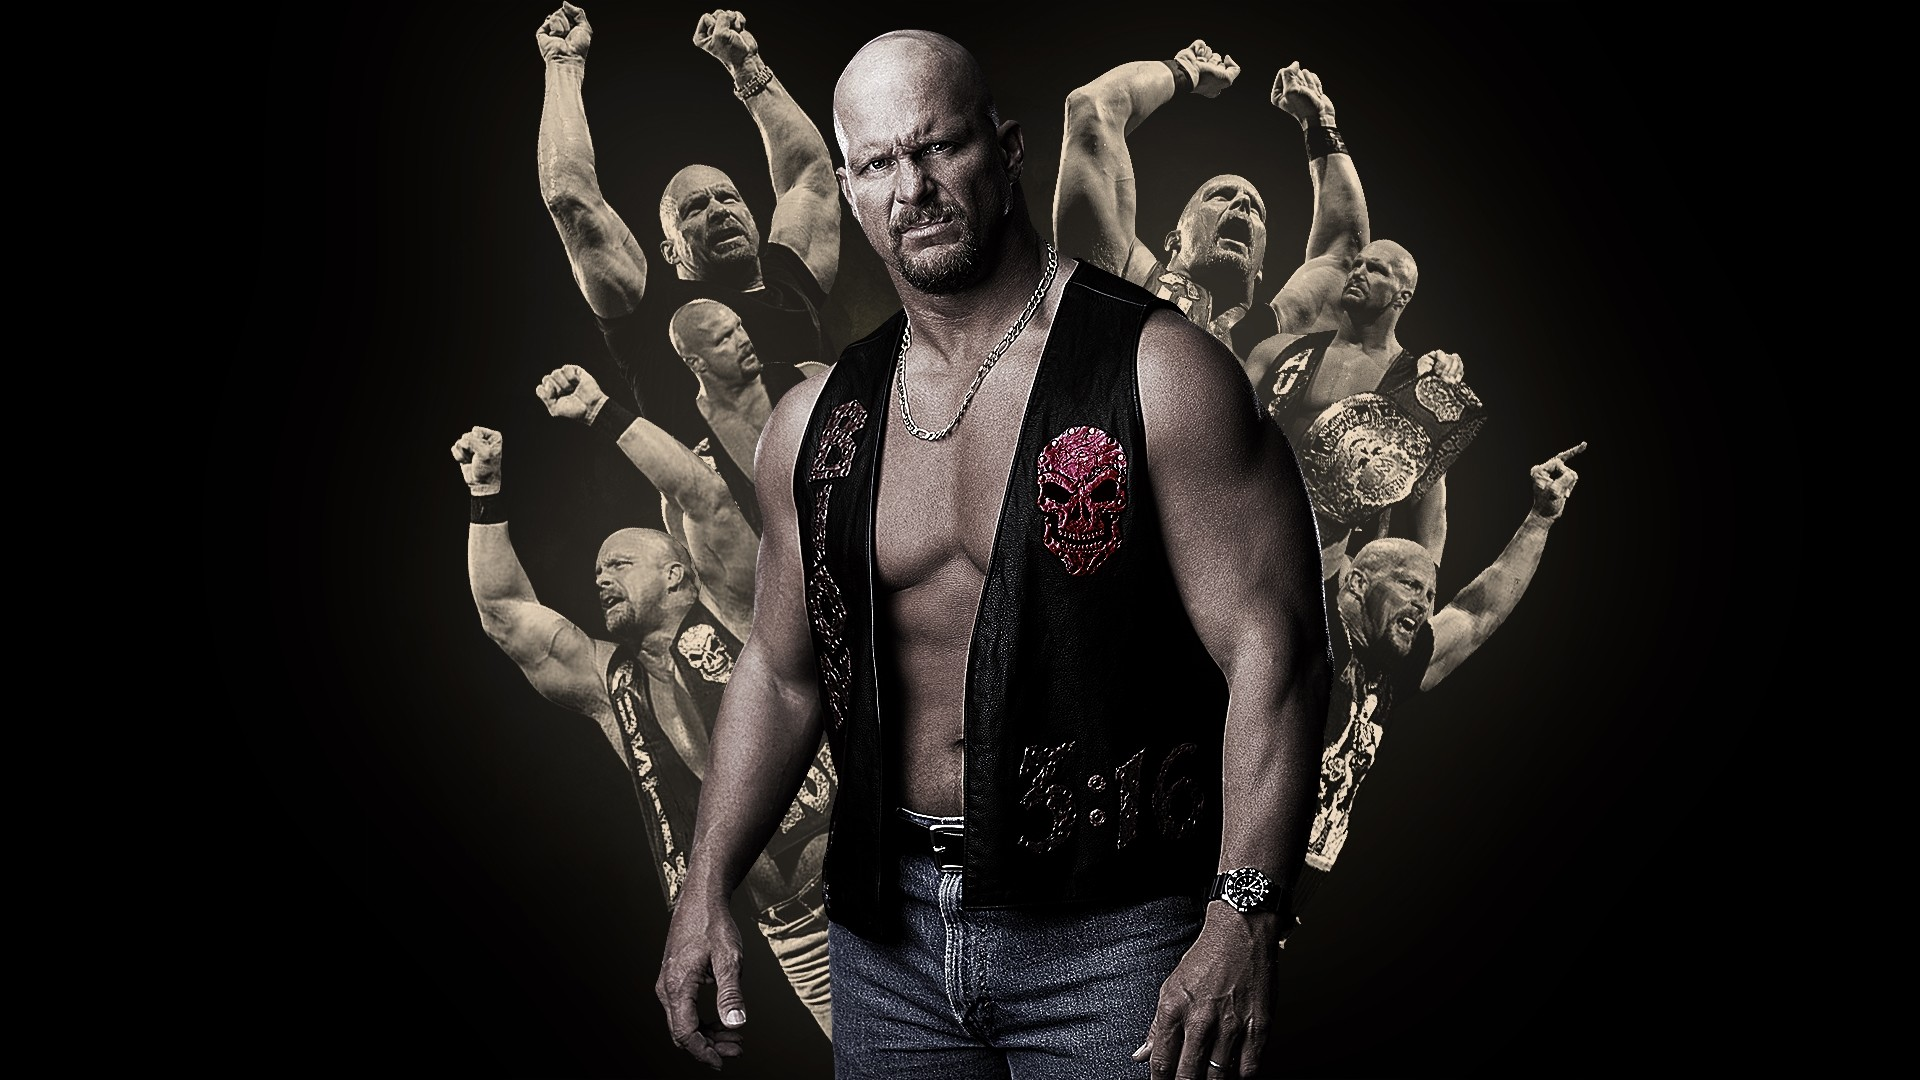 1920x1080 WWE GOLDBERG wallpapers WWE SuperstarsWWE wallpapersWWE pictures | HD  Wallpapers | Pinterest | Wallpaper and Hd wallpaper